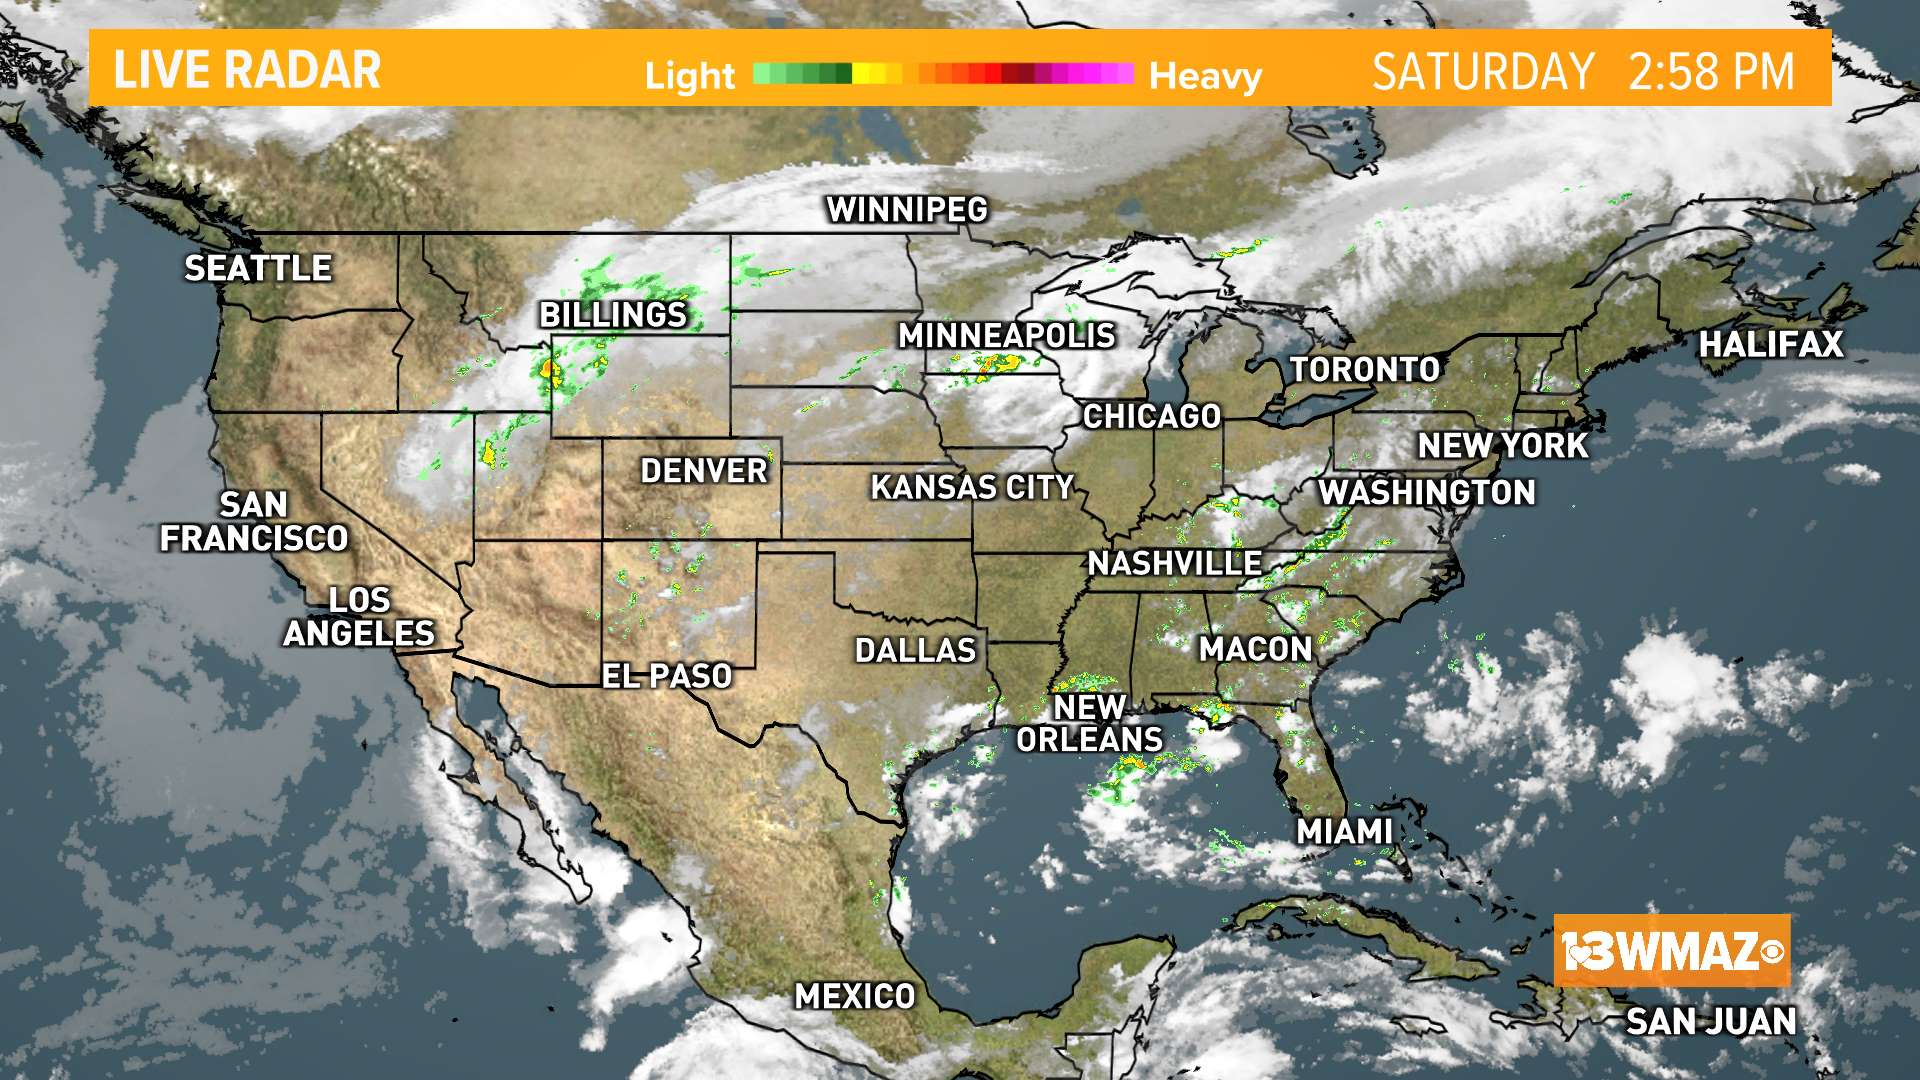 National Satellite Radar